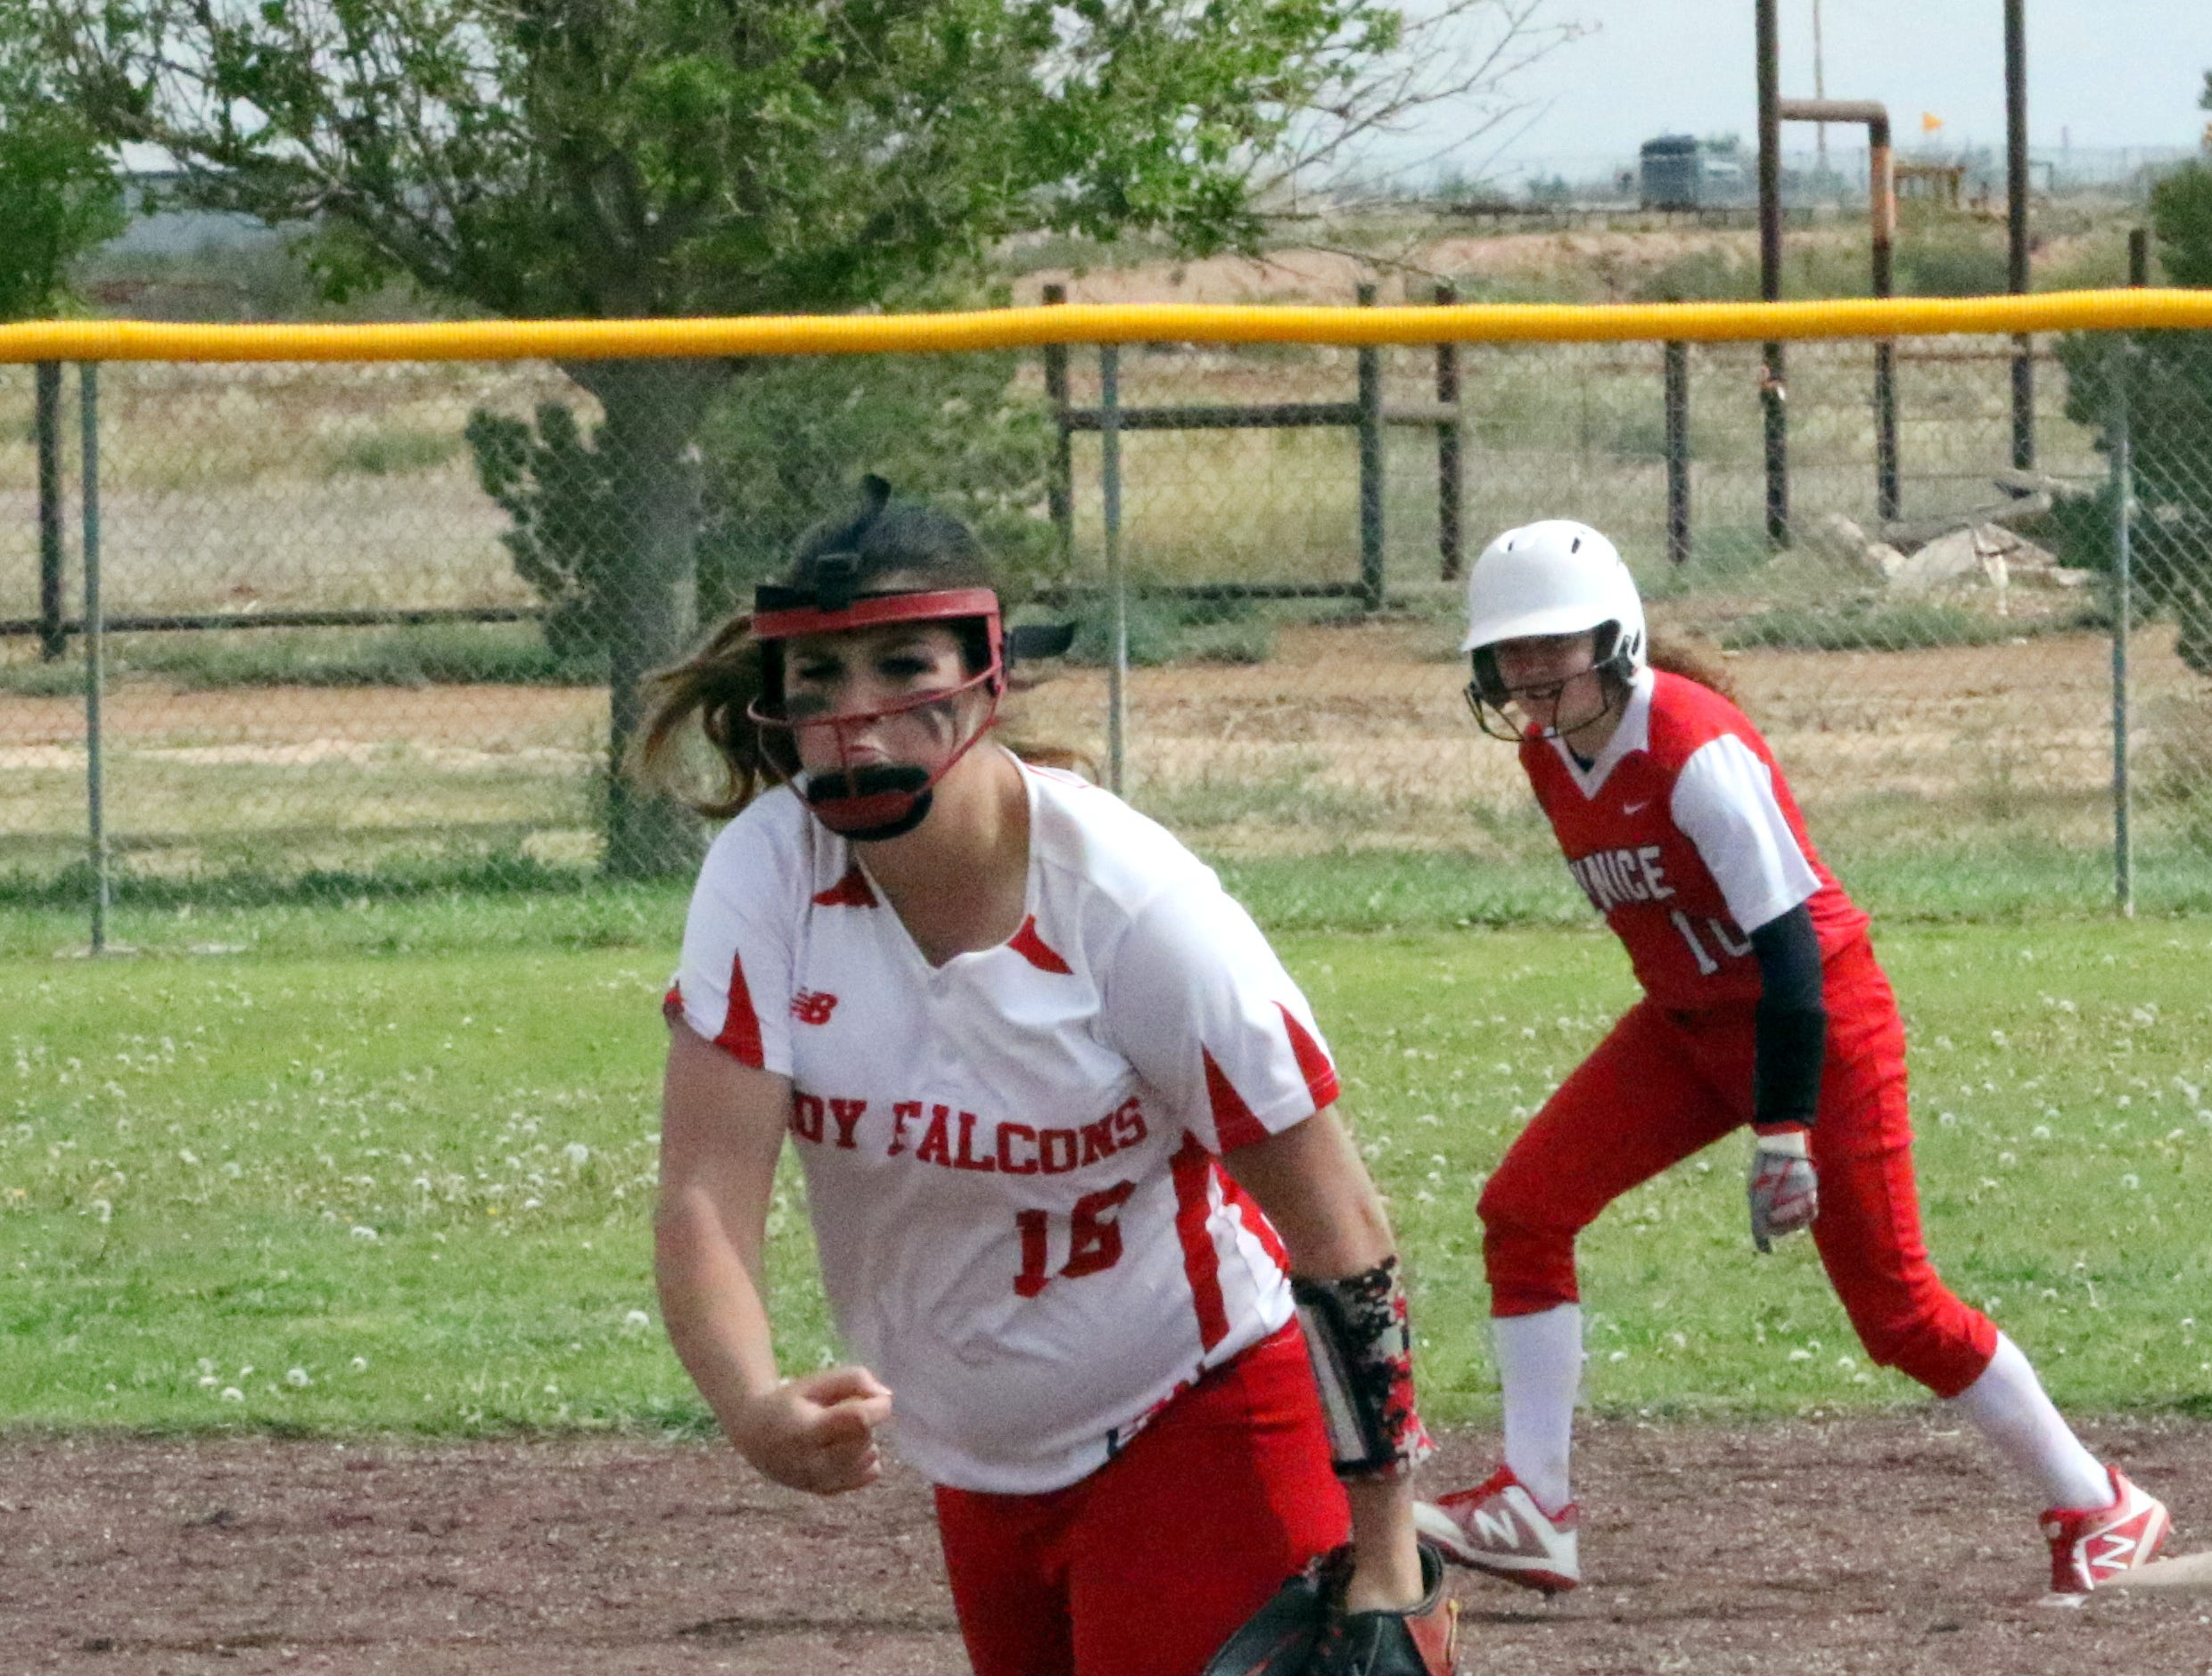 Faith McDonald pitches during Game 2 of Saturday's doubleheader. Eunice won Game 1, 13-12 and Loving won Game 2, 16-6.